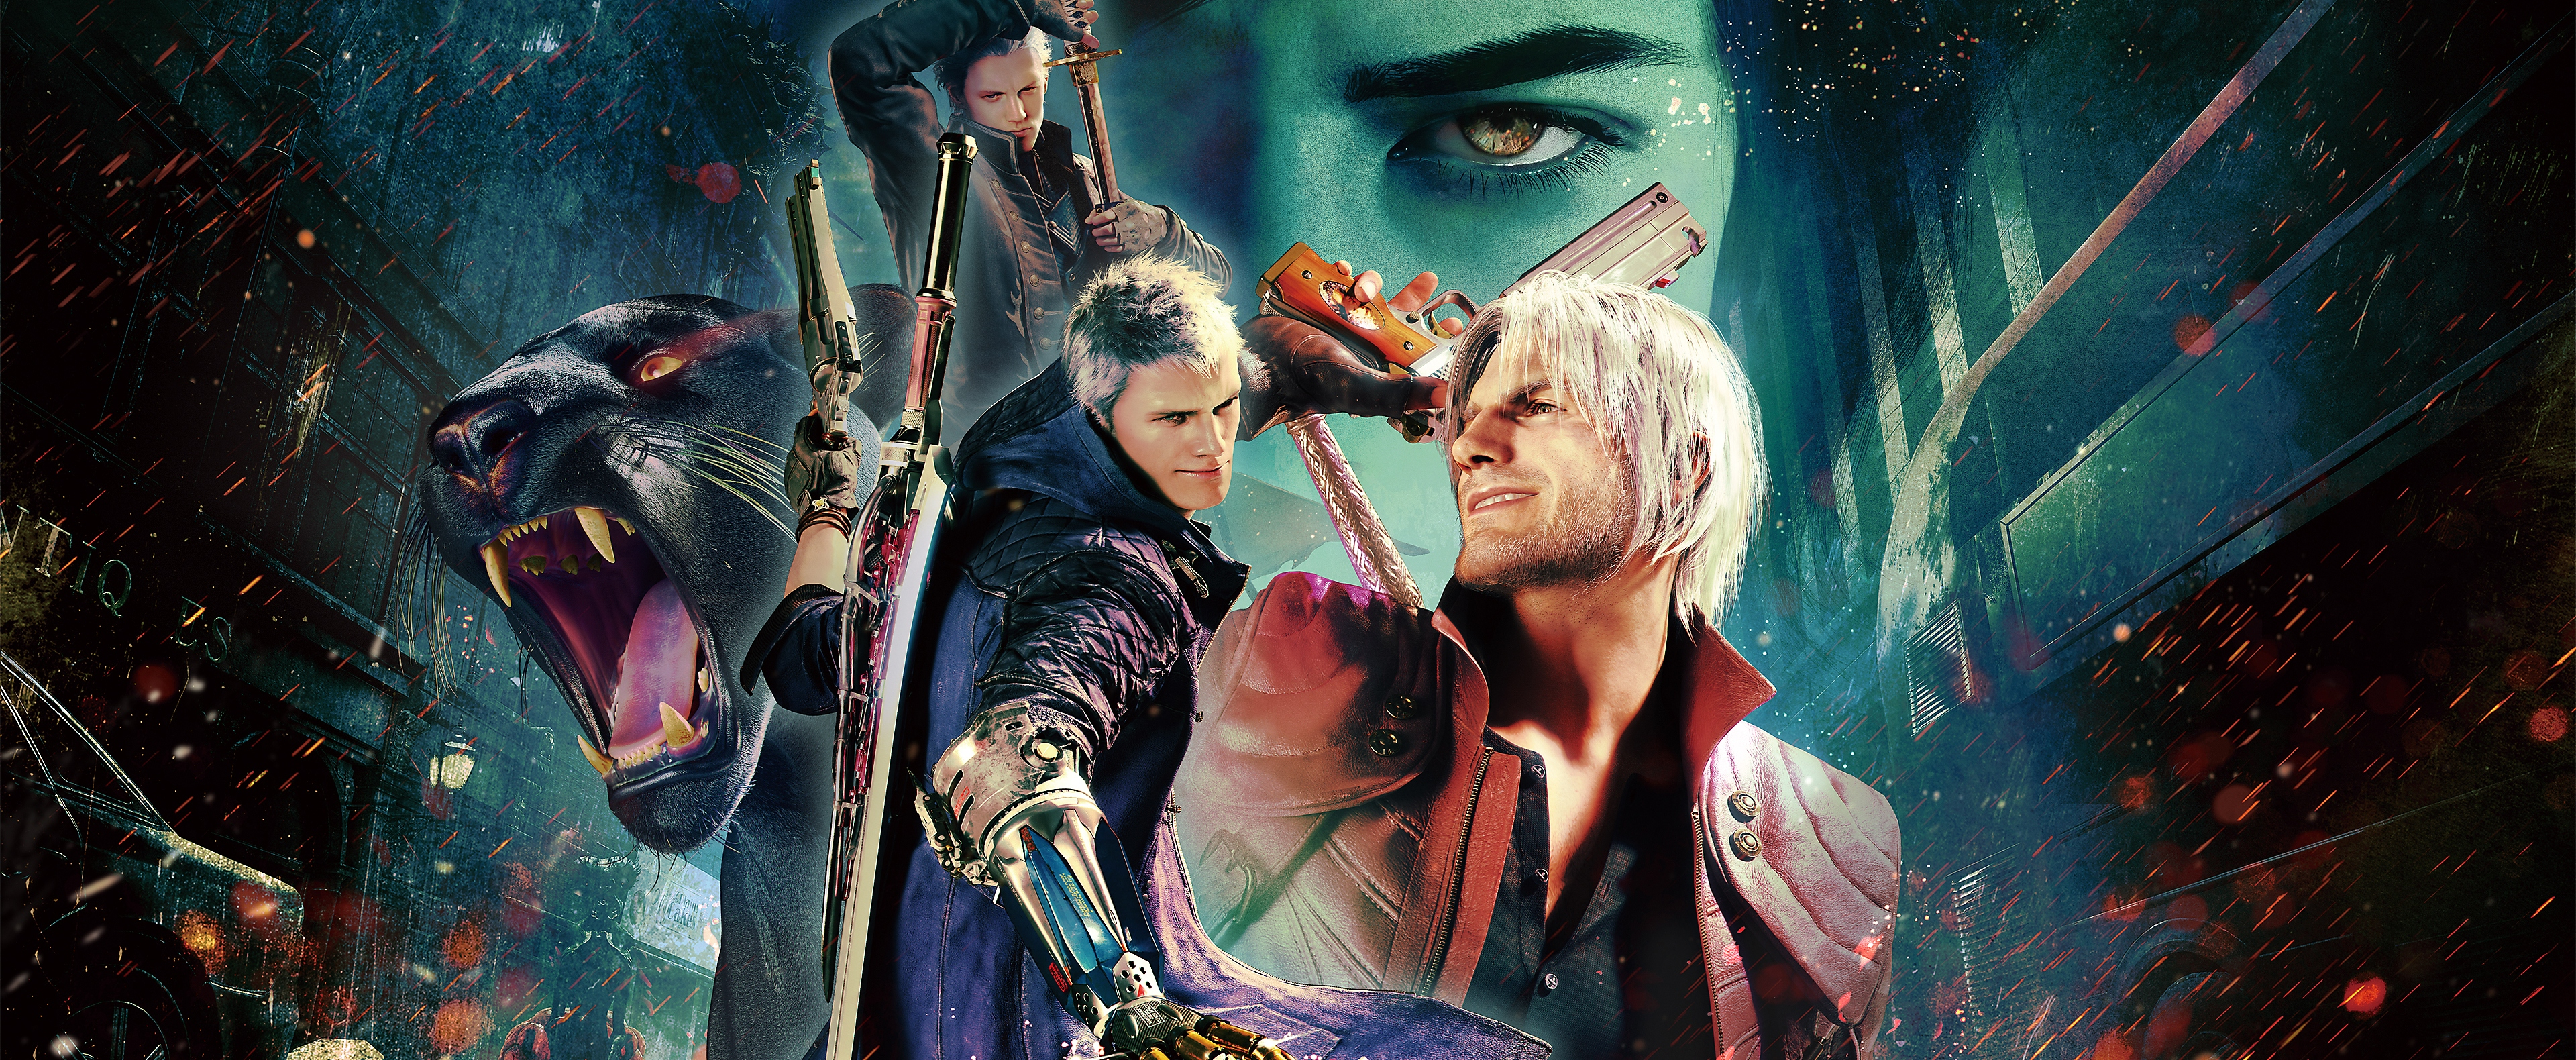 Devil May Cry 5: Special Edition - Tasto di ritorno unitario Art